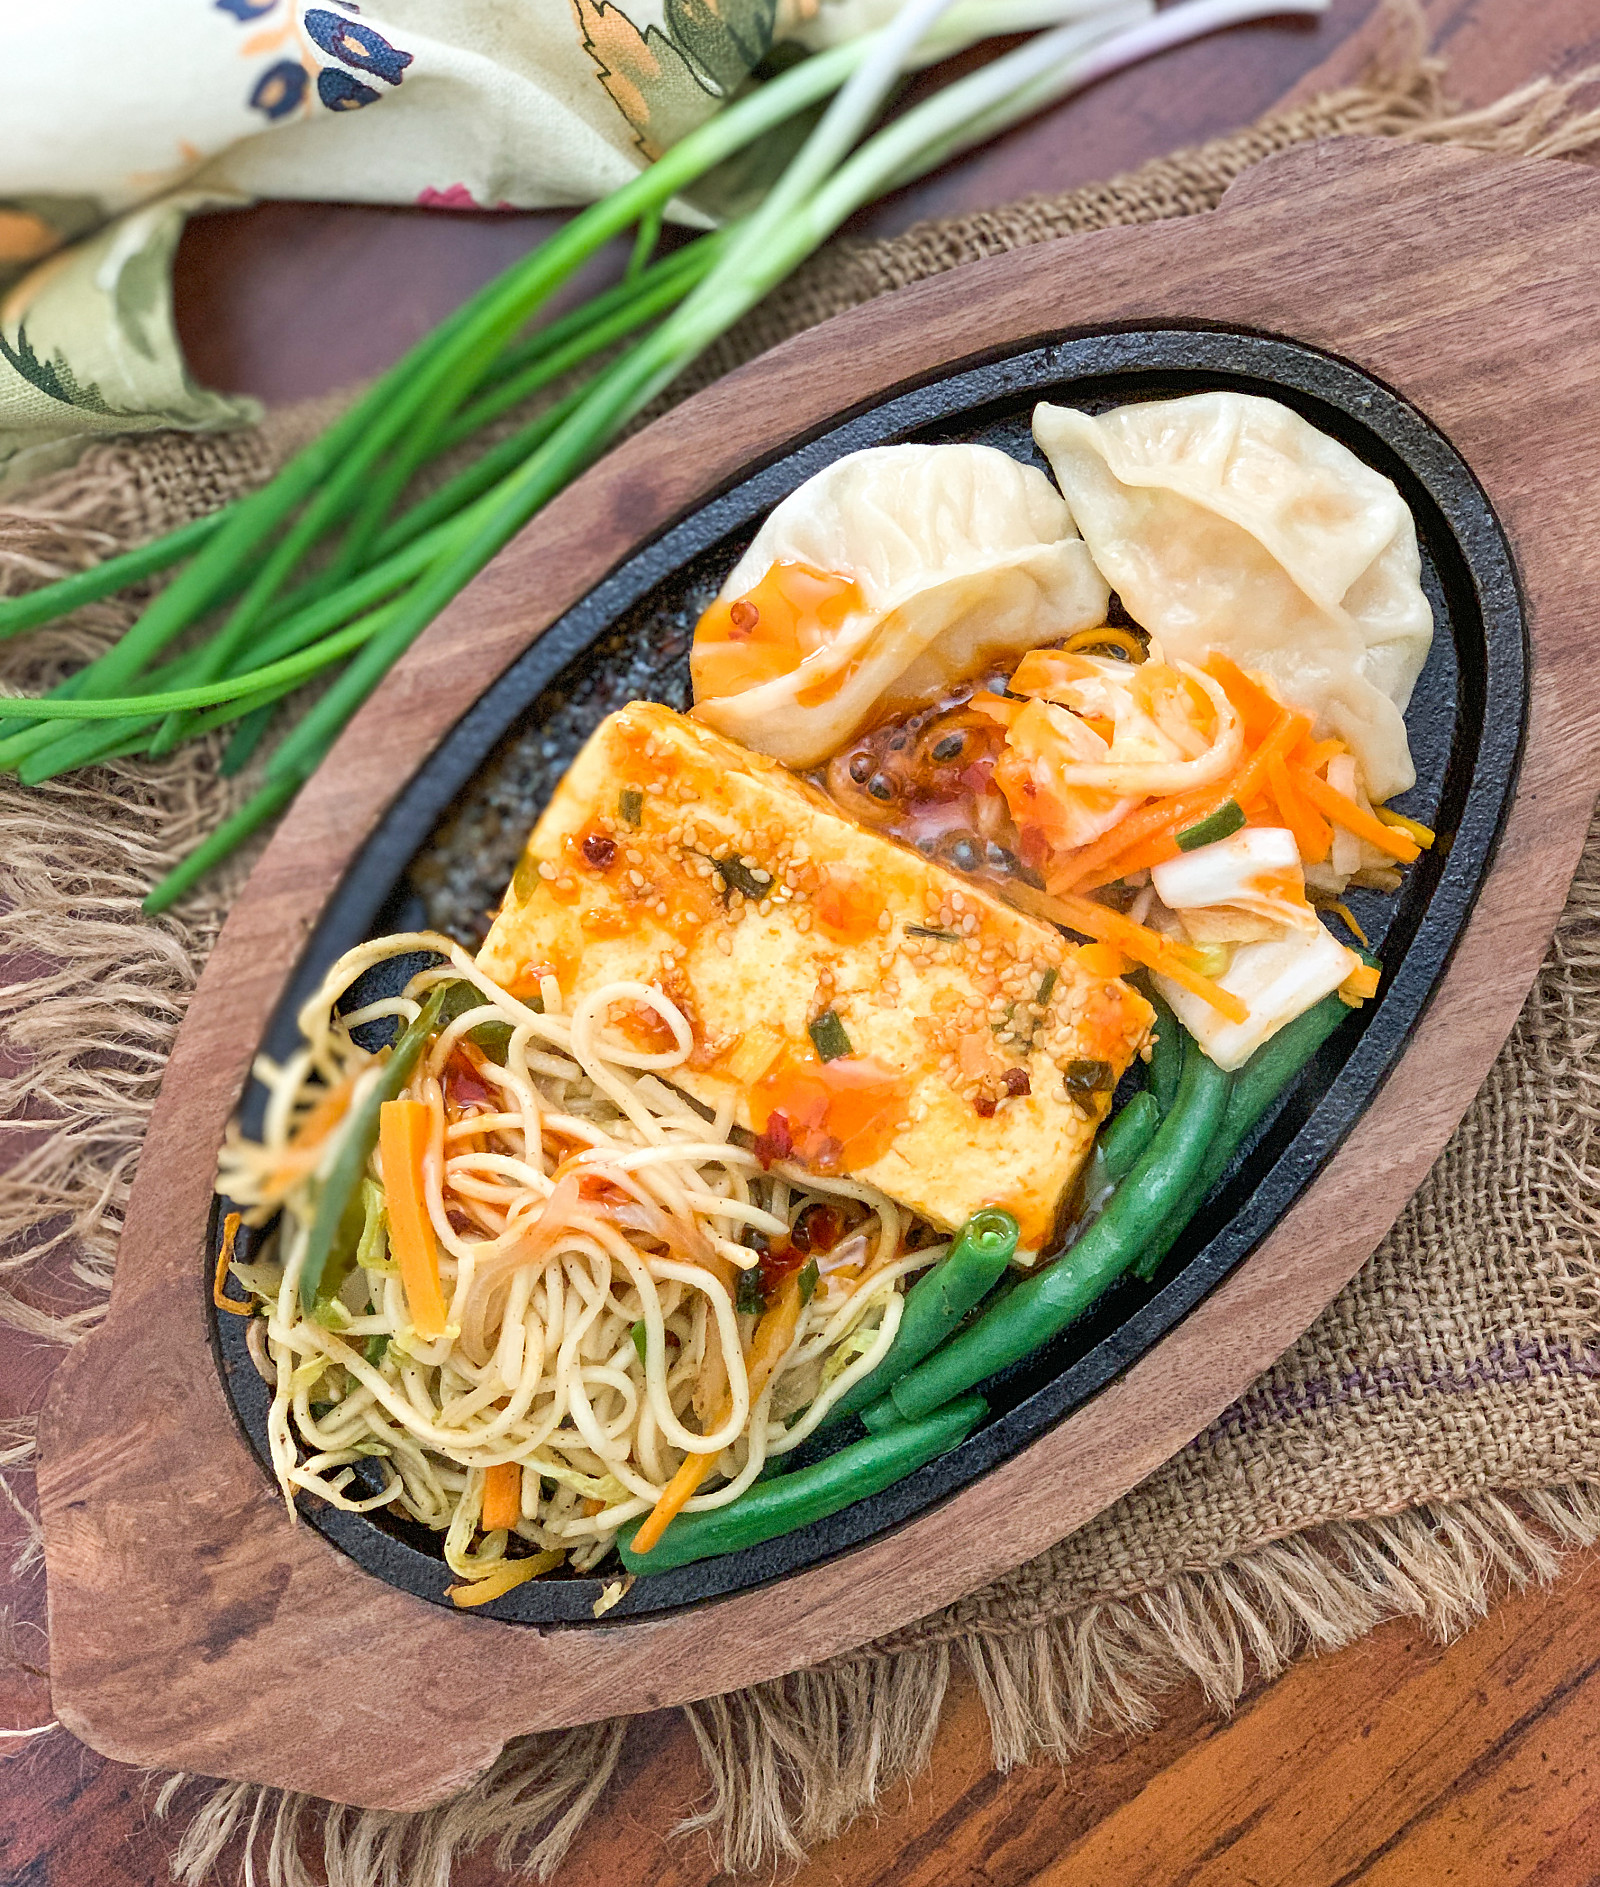 Vegetarian Chinese Sizzler With Noodles & Momos Recipe